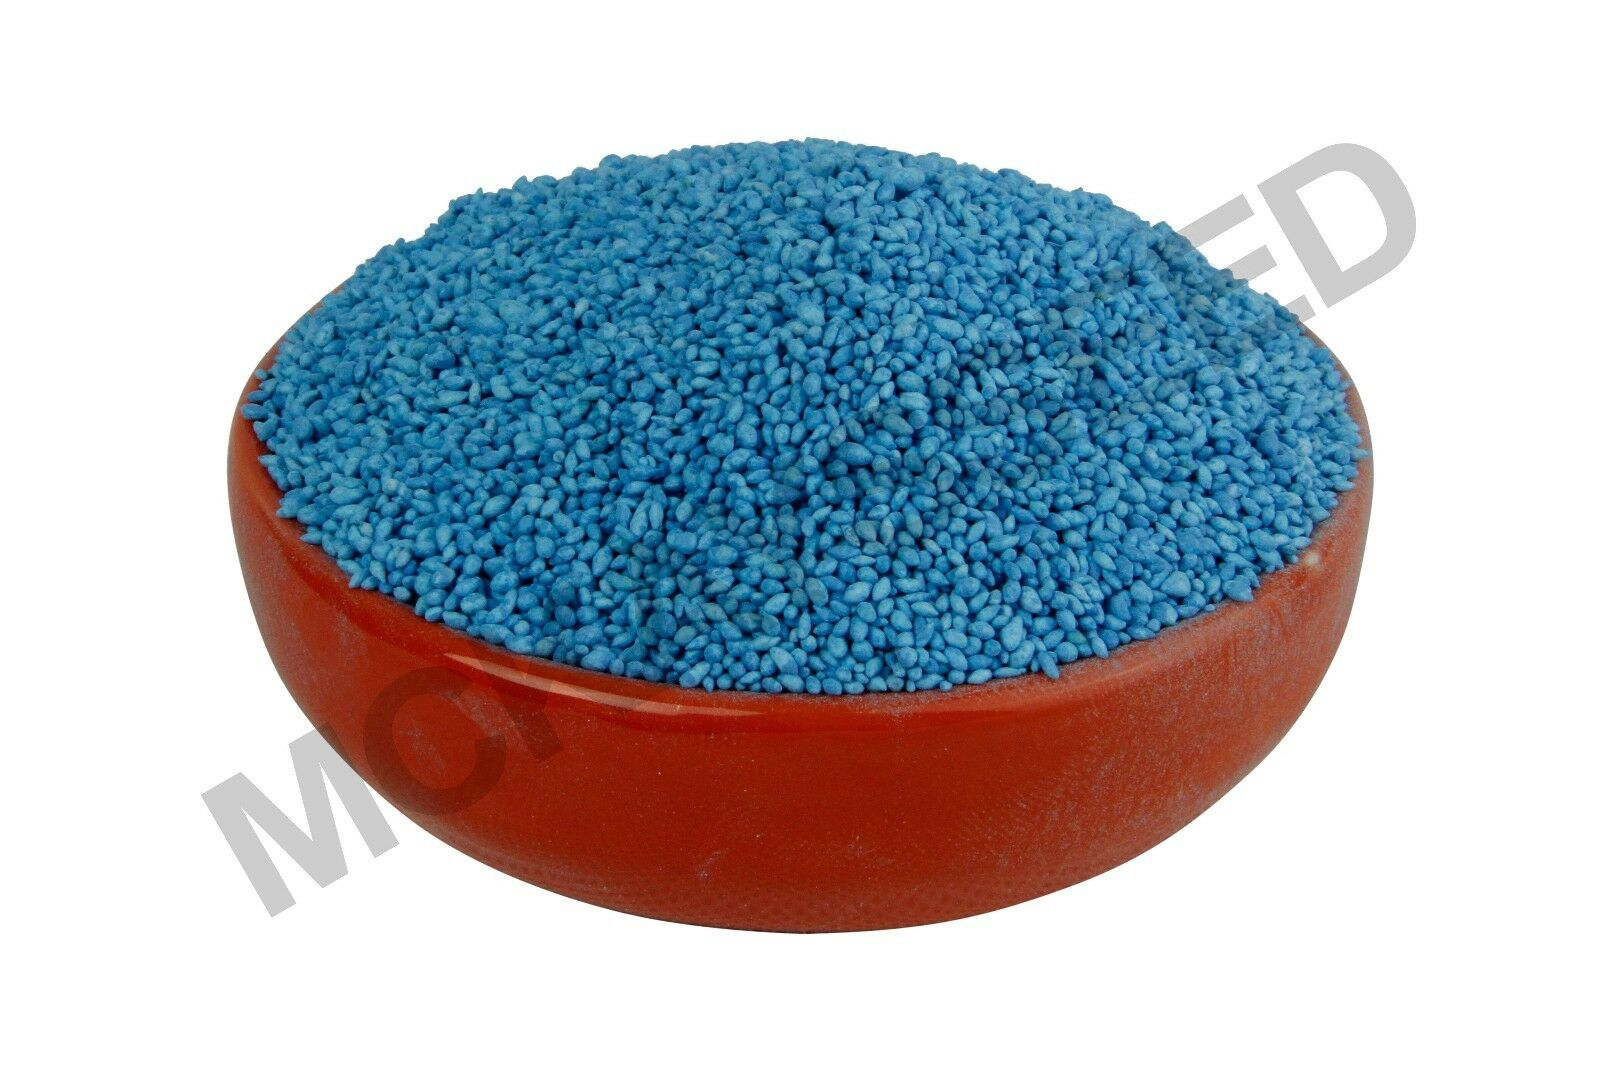 Superb Mckays Queensland Blue Couch Pure Grass Seed 1Kg Lawn Dailytribune Chair Design For Home Dailytribuneorg